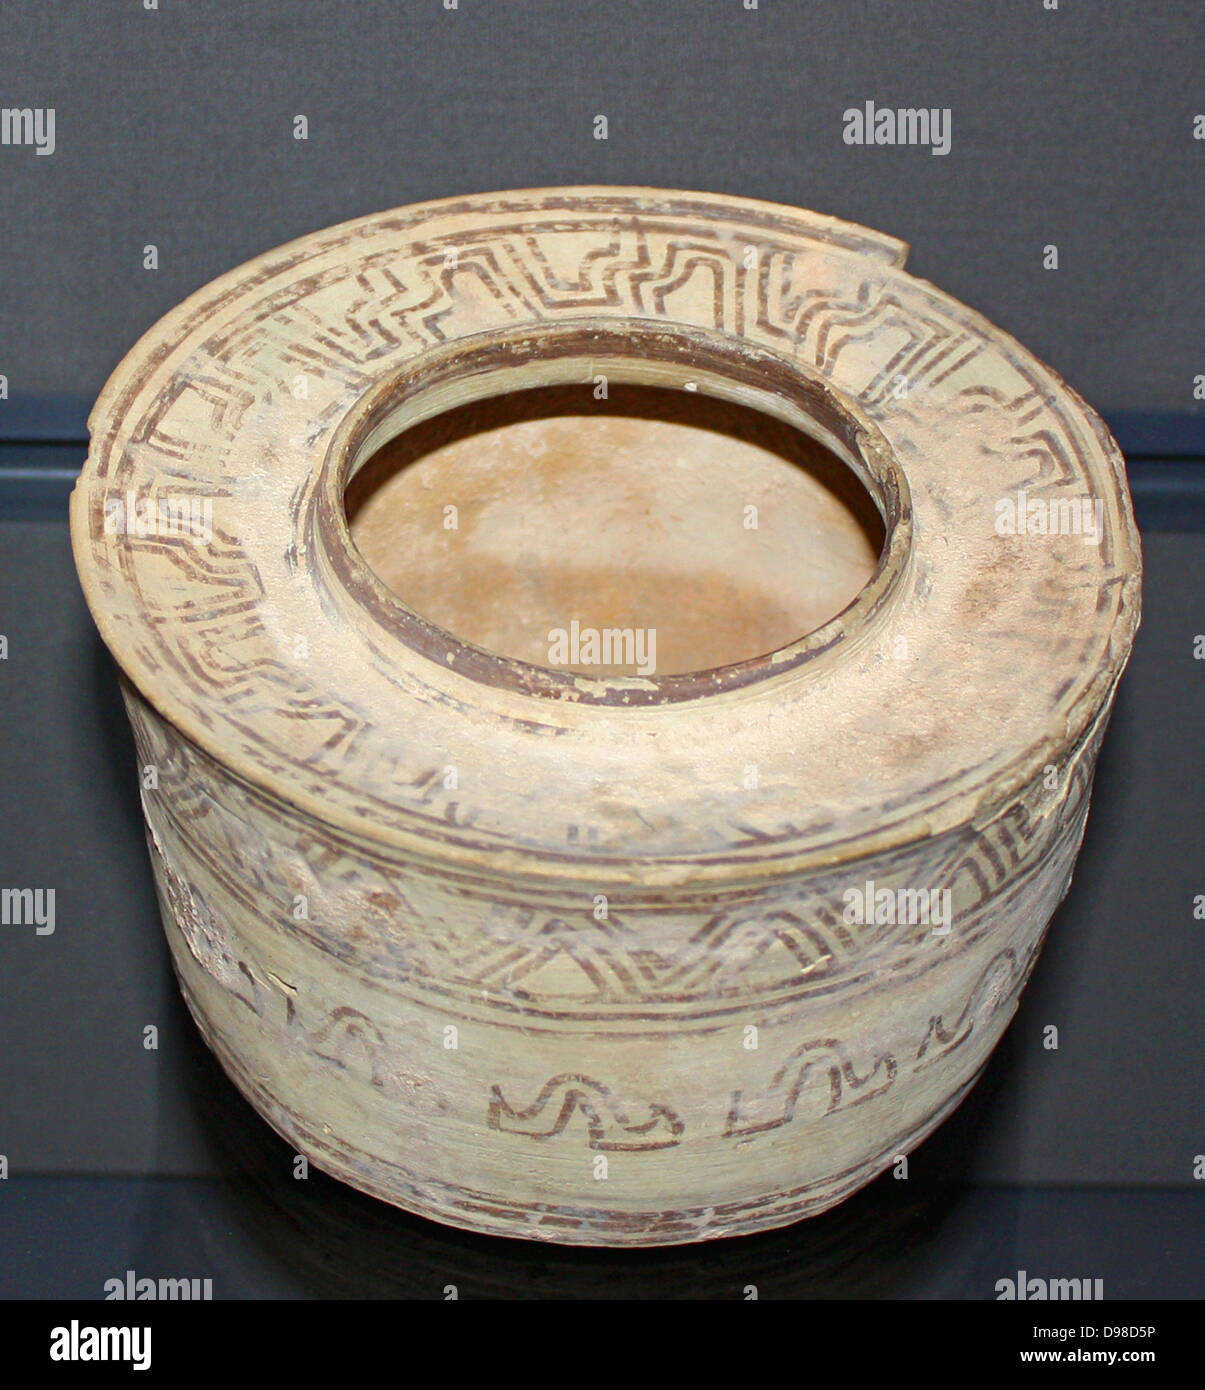 Nal style polychrome pot, Baluchistan, 3000-2000 BC.  Nal and other sites in Baluchistan were important pre-Harappa - Stock Image